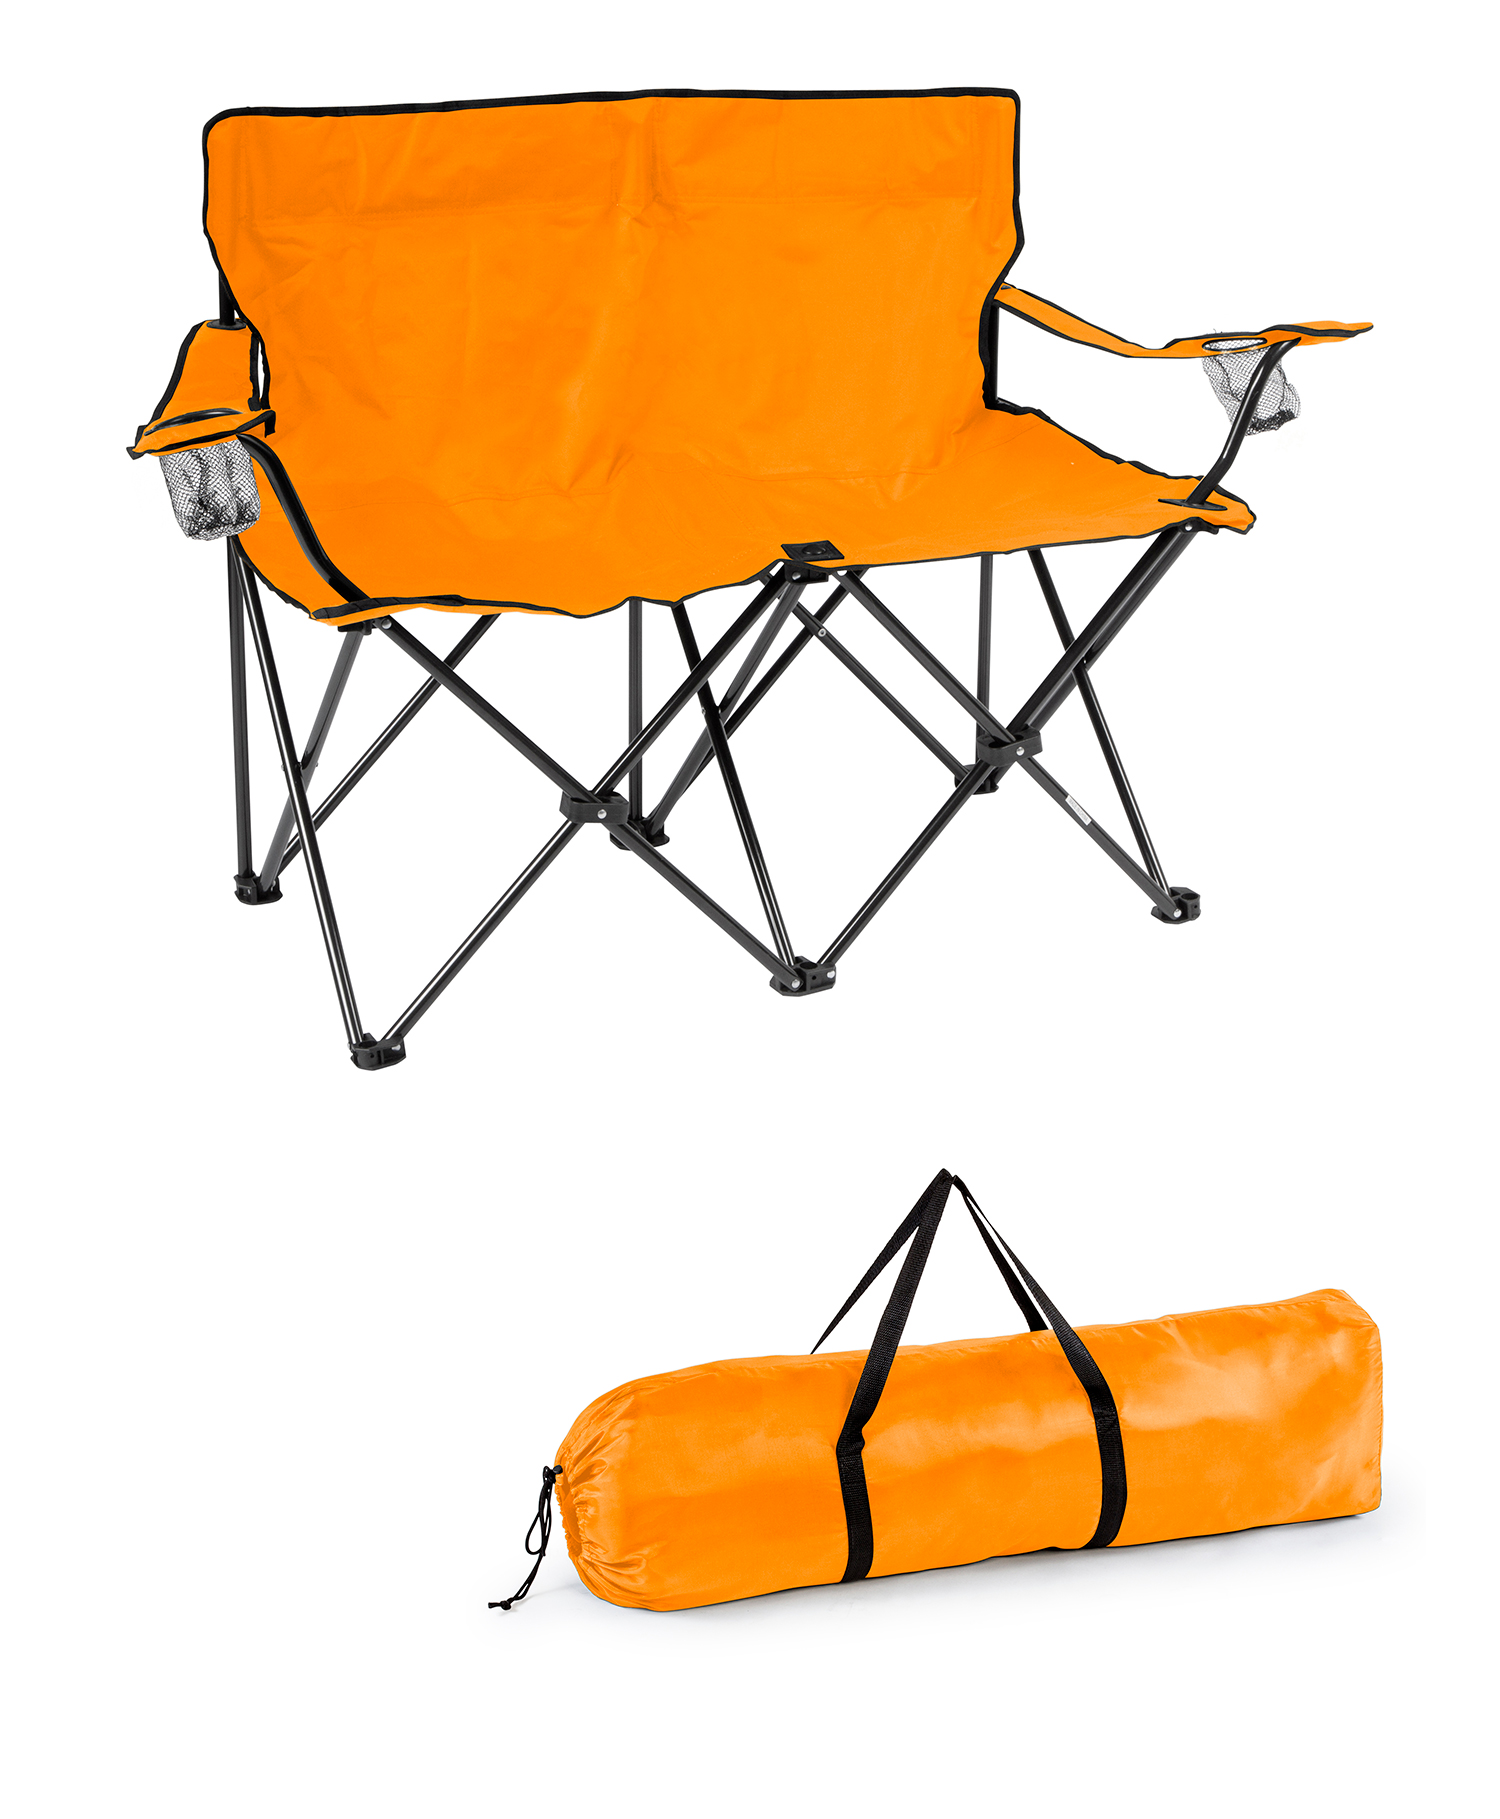 Loveseat Style Double Camp Chair with Steel Frame by Trademark Innovations (Orange,... by Trademark Innovations